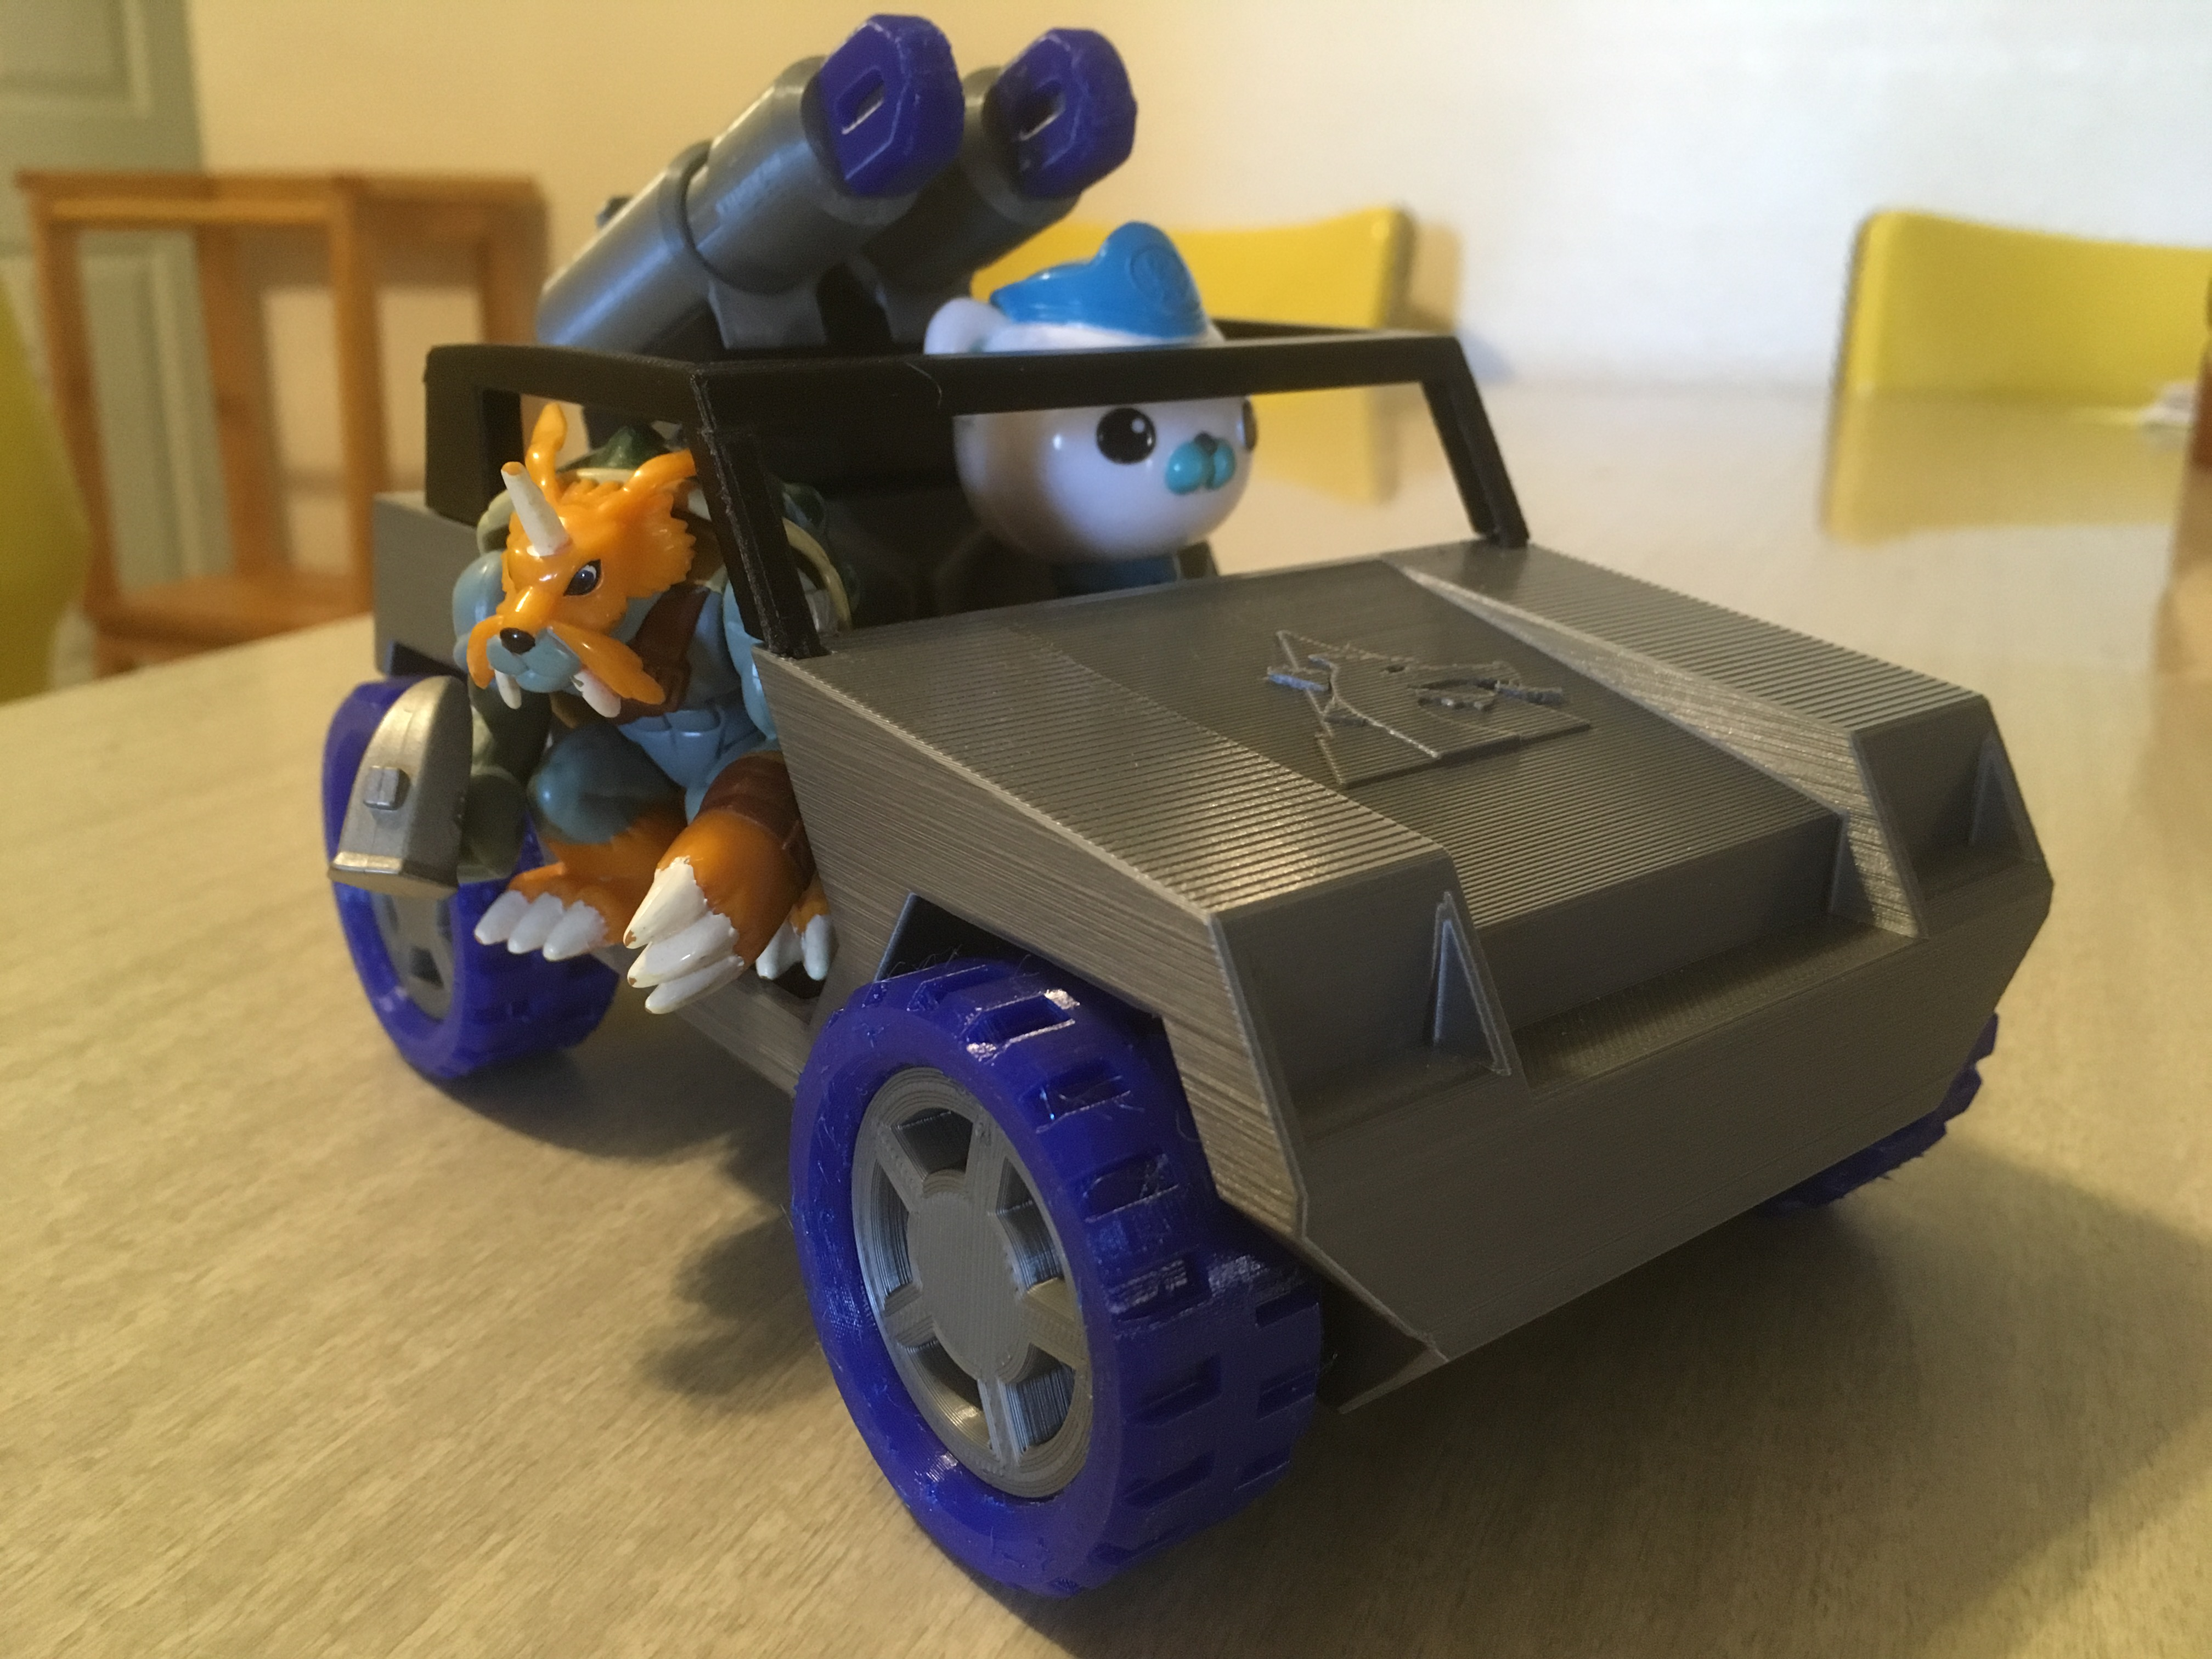 My daughter's Octonauts will likely be taking this vehicle over for their land missions. Zudomon is their friend apparently, which I guess makes sense.